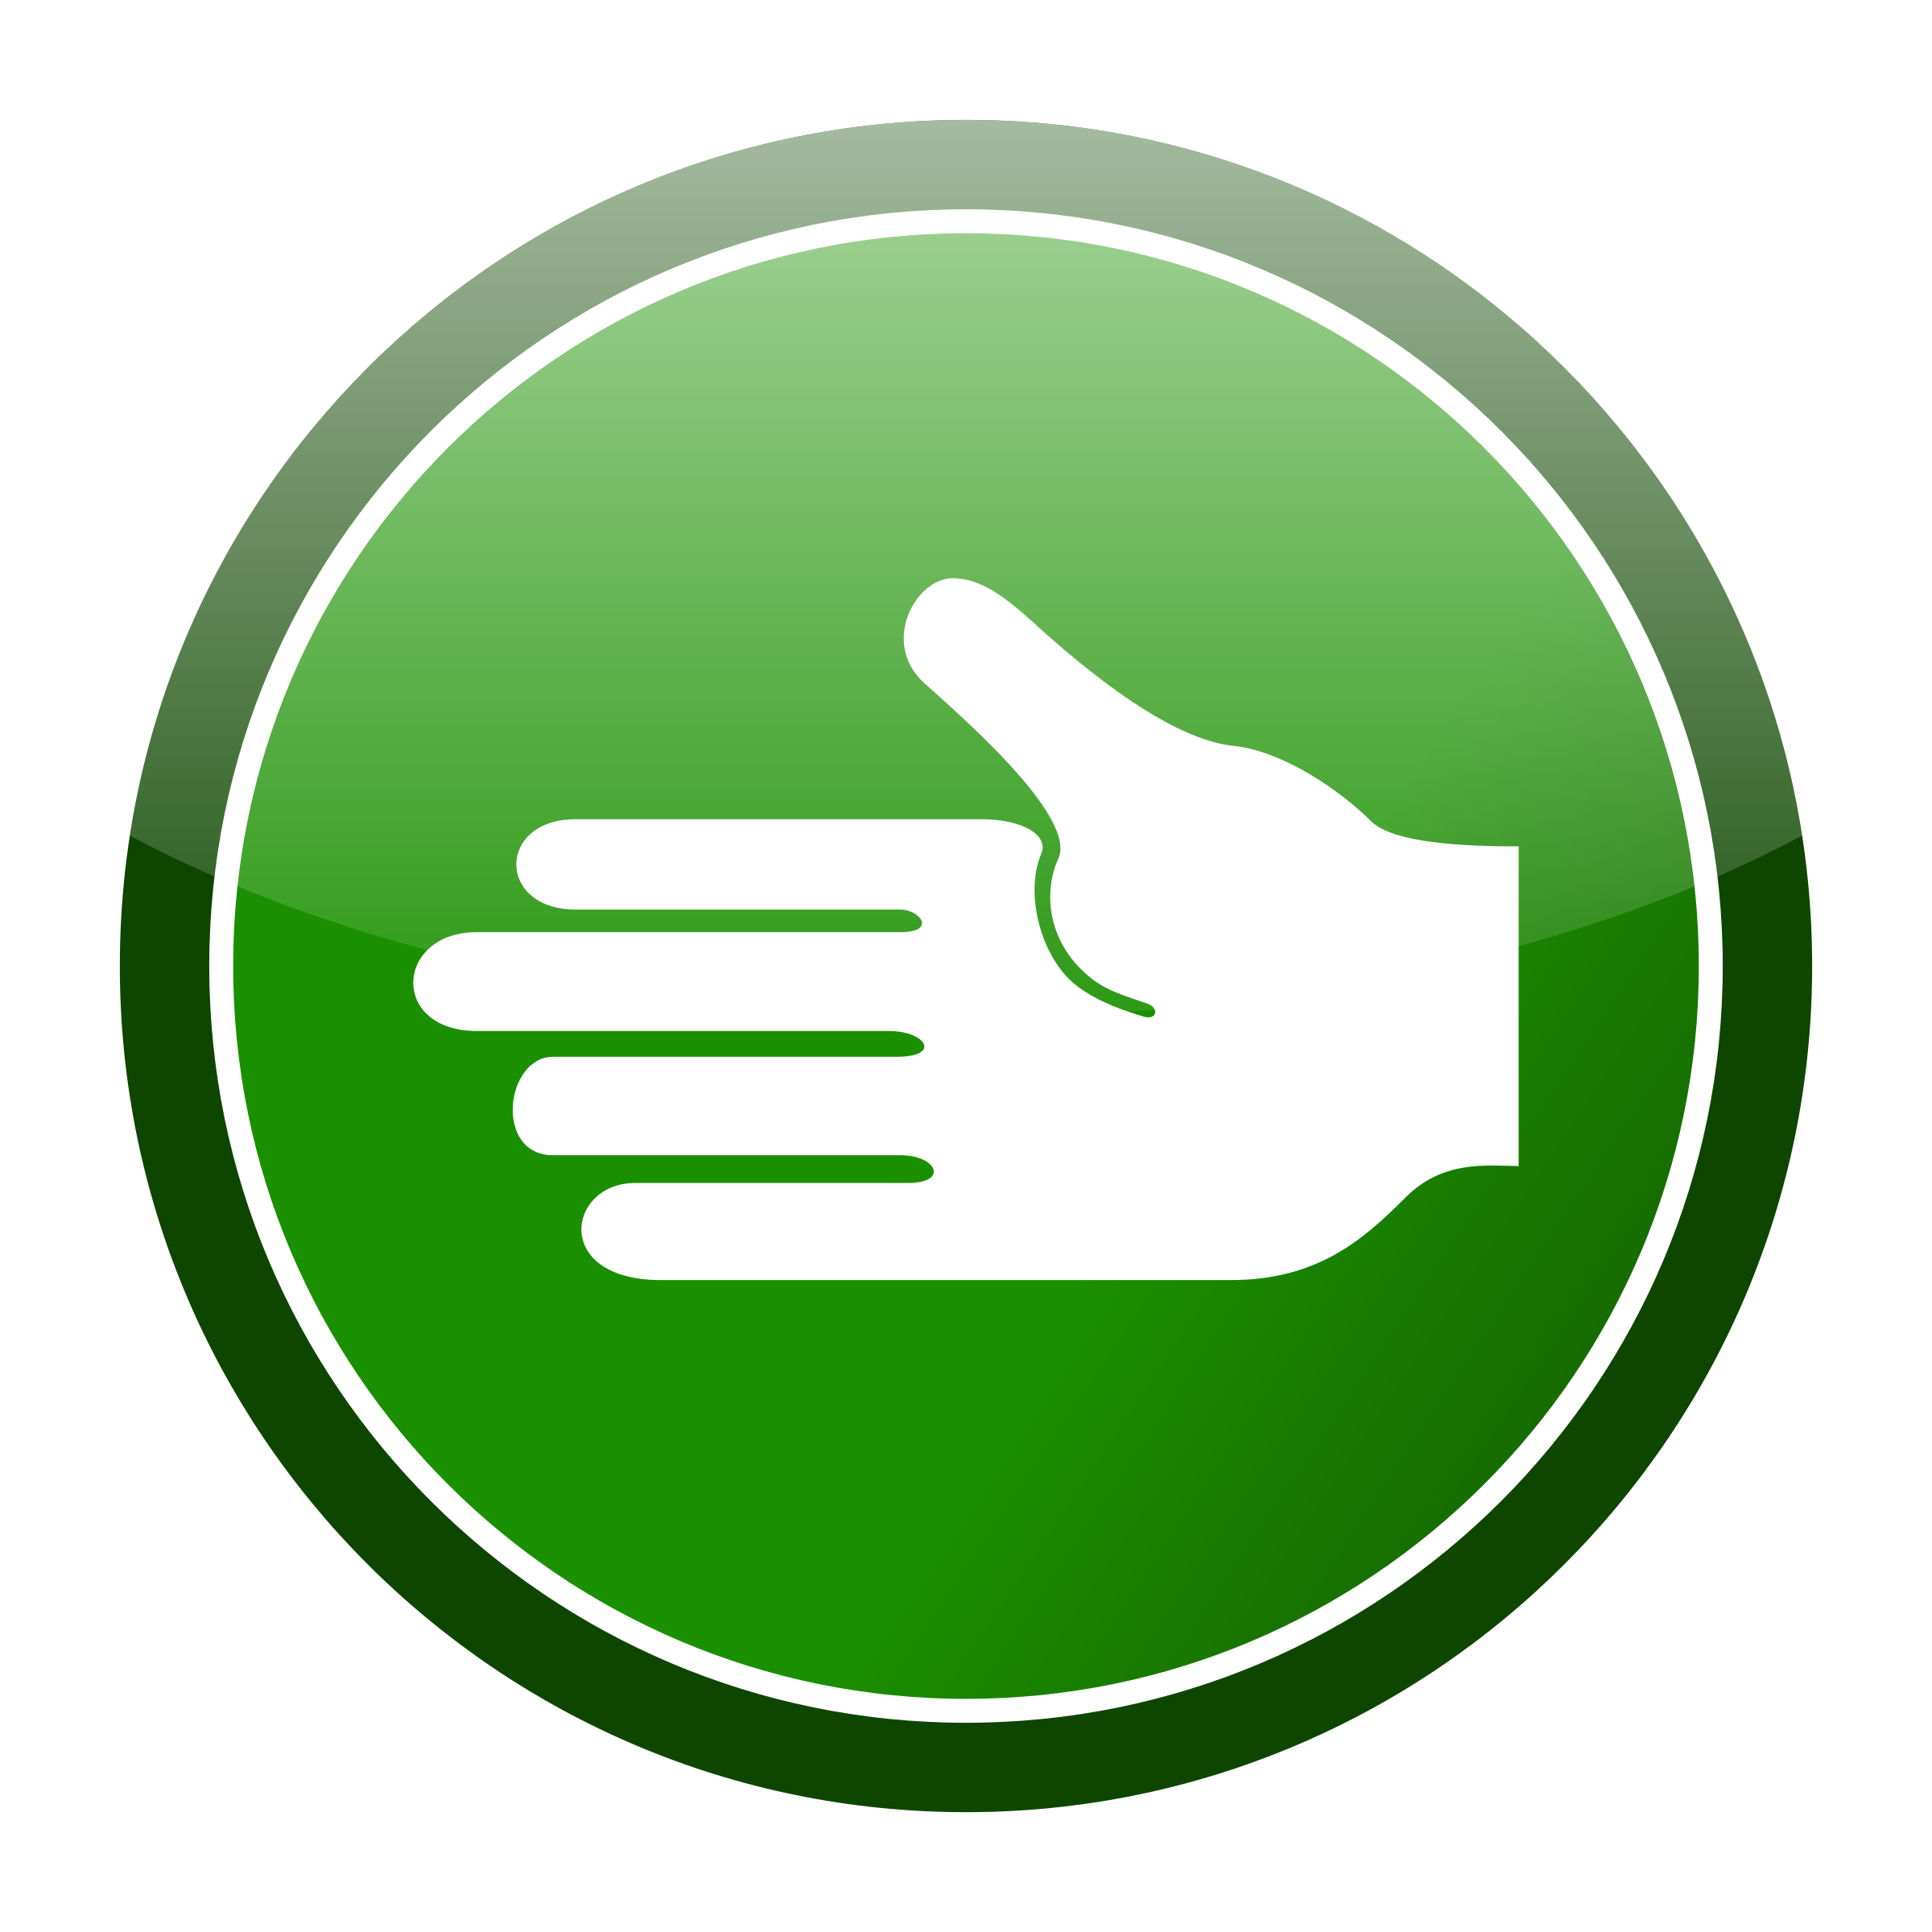 Green cirlce hand icon by kuba